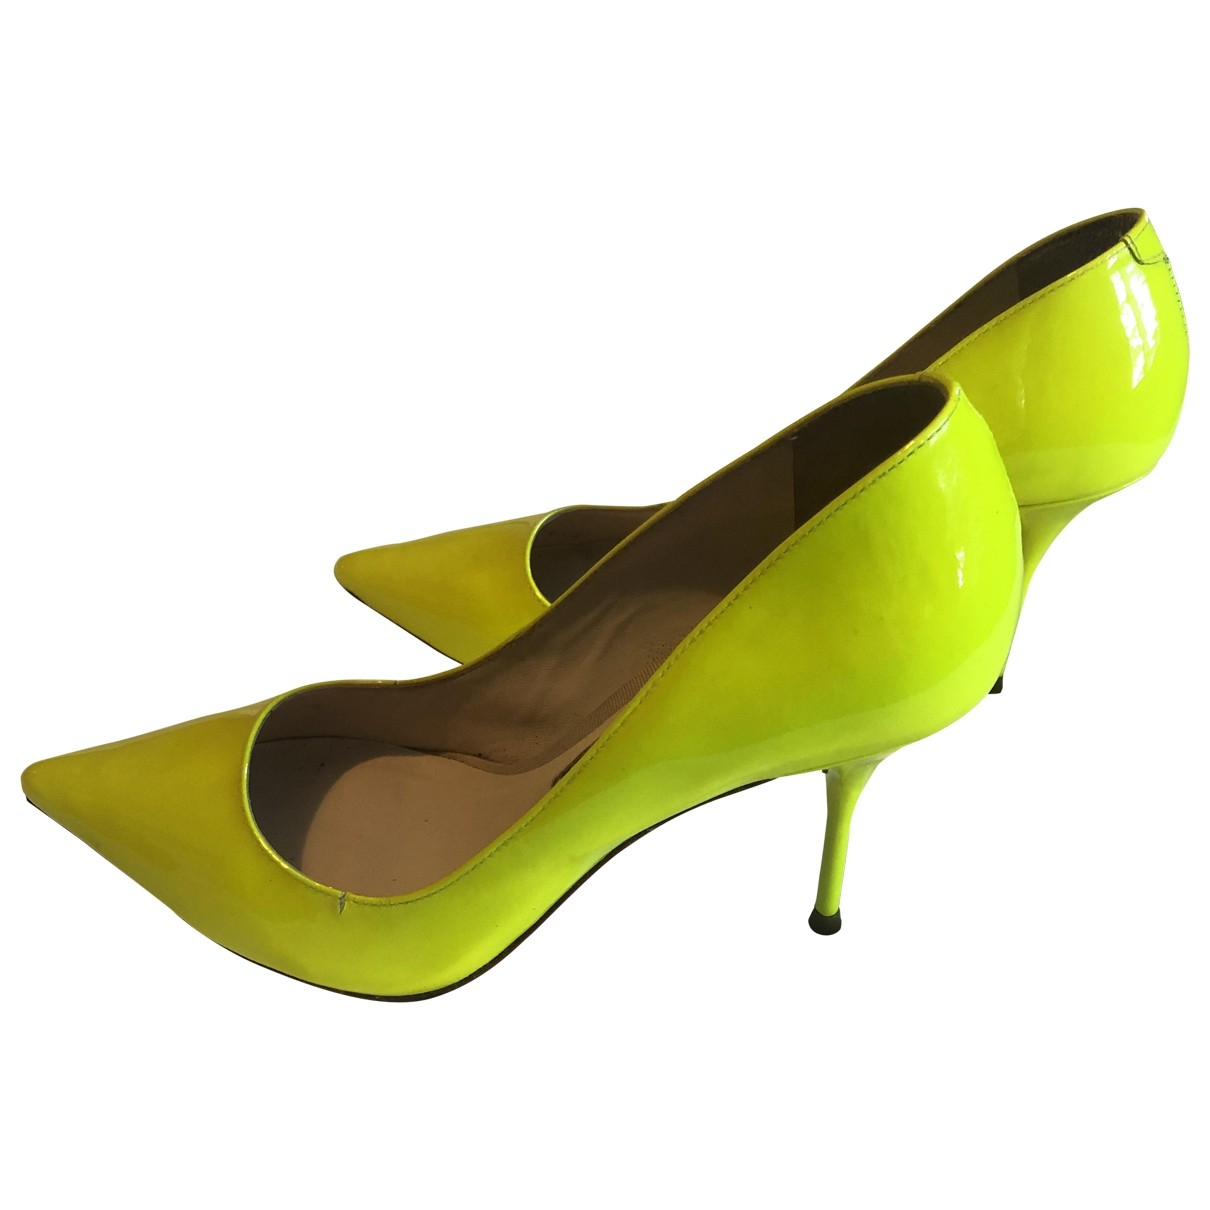 Sophia Webster \N Yellow Patent leather Heels for Women 36.5 EU